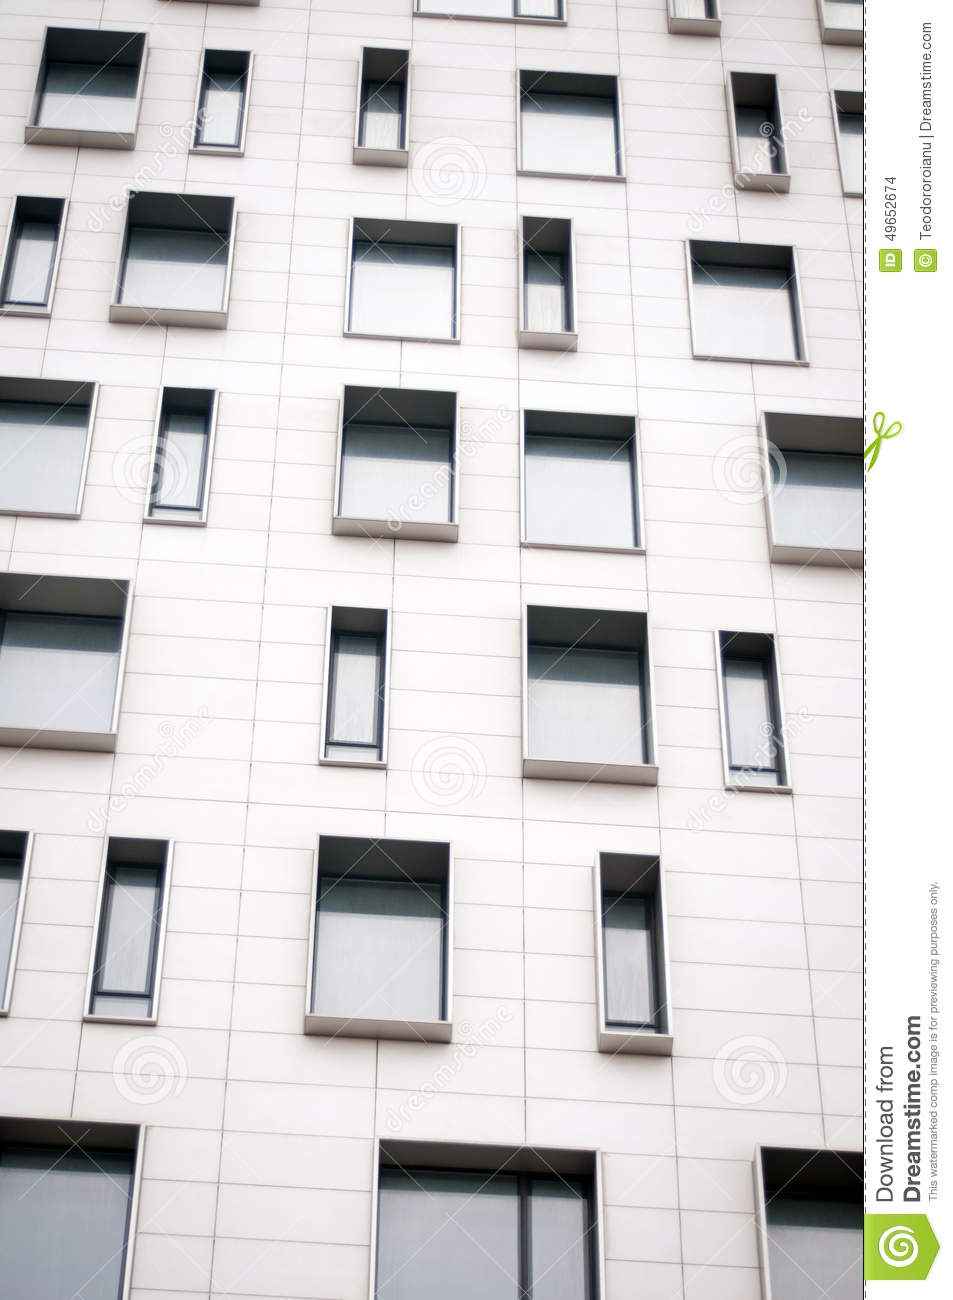 Window facade  Modern Design Facade Stock Photo - Image: 49652674